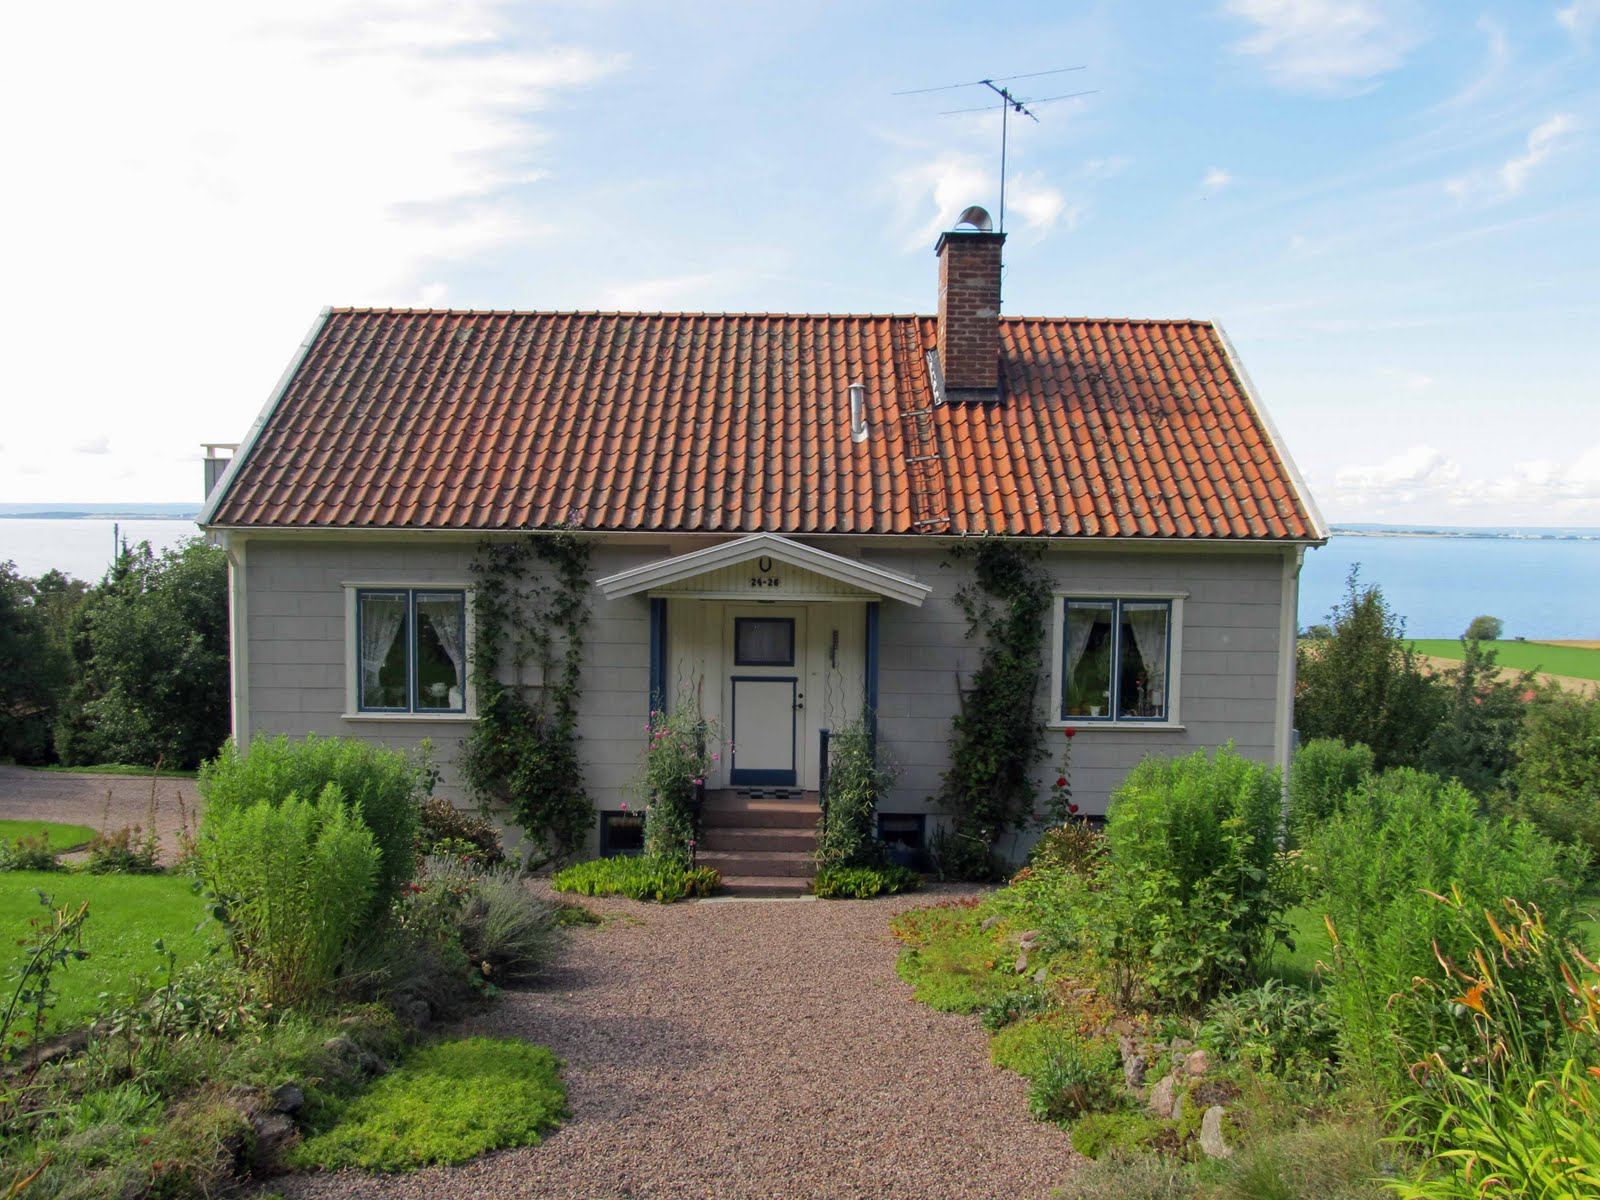 Summit musings gaily painted houses polkagris in sweden for Red cottage